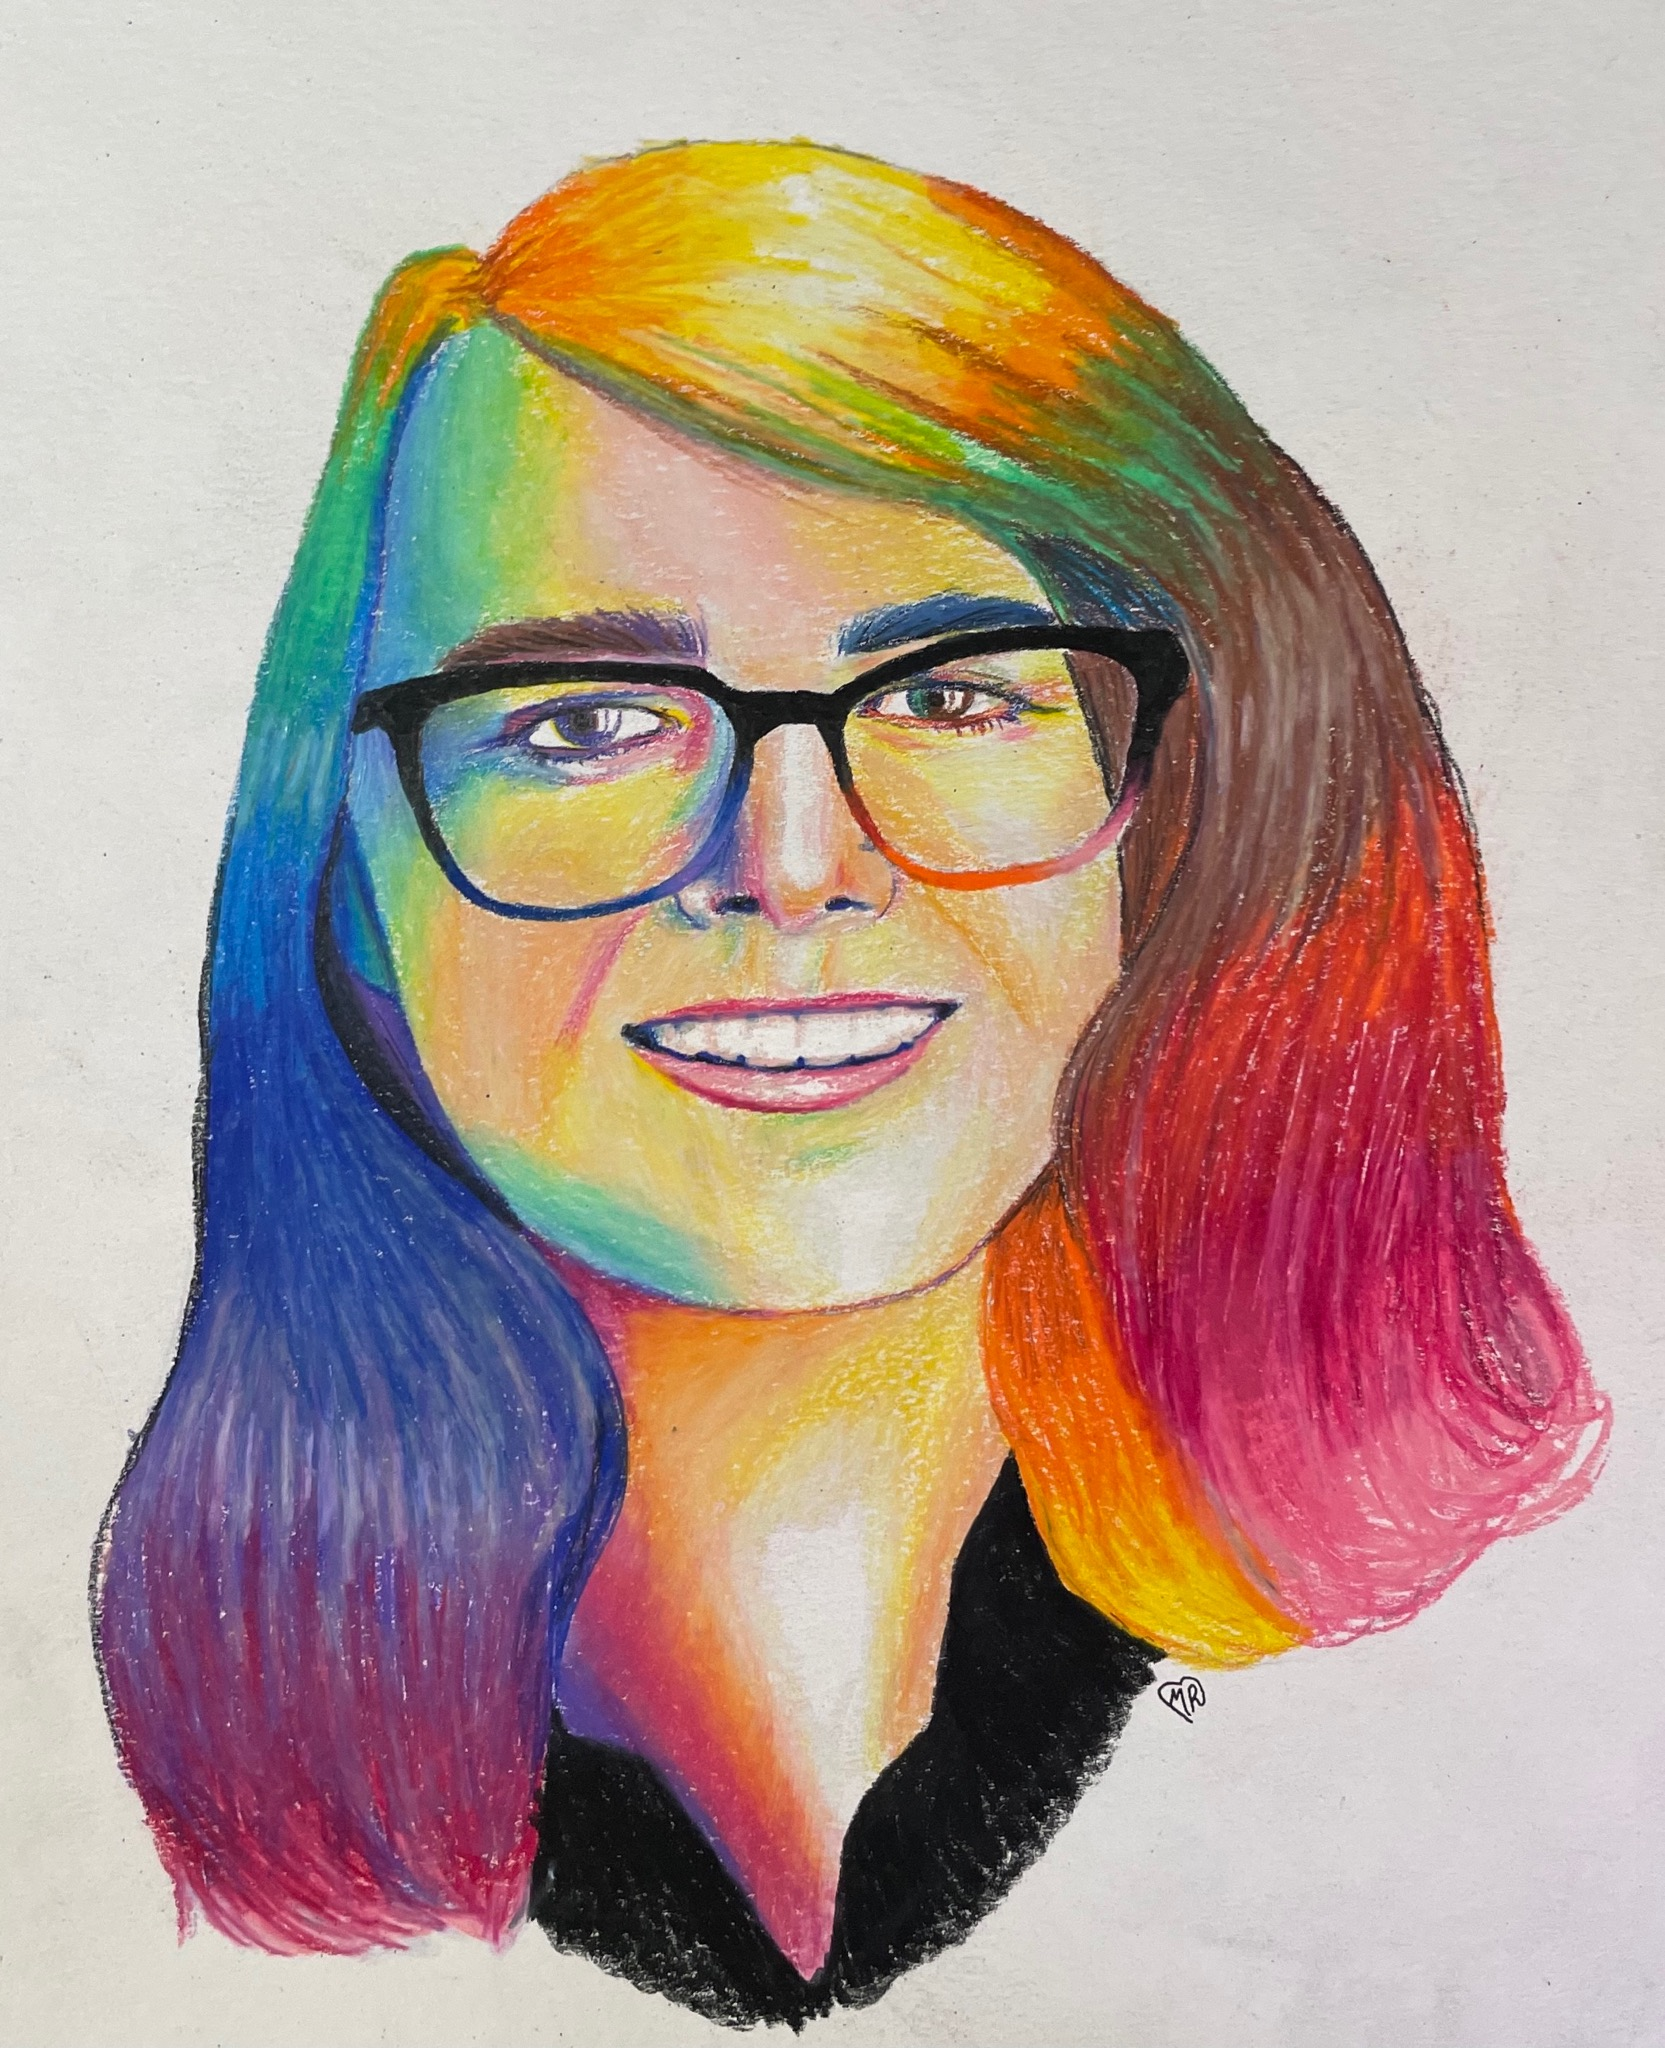 A young woman, Charlotte Jenkins, in a line drawing with rainbow colored hair, glasses, and a smilte.